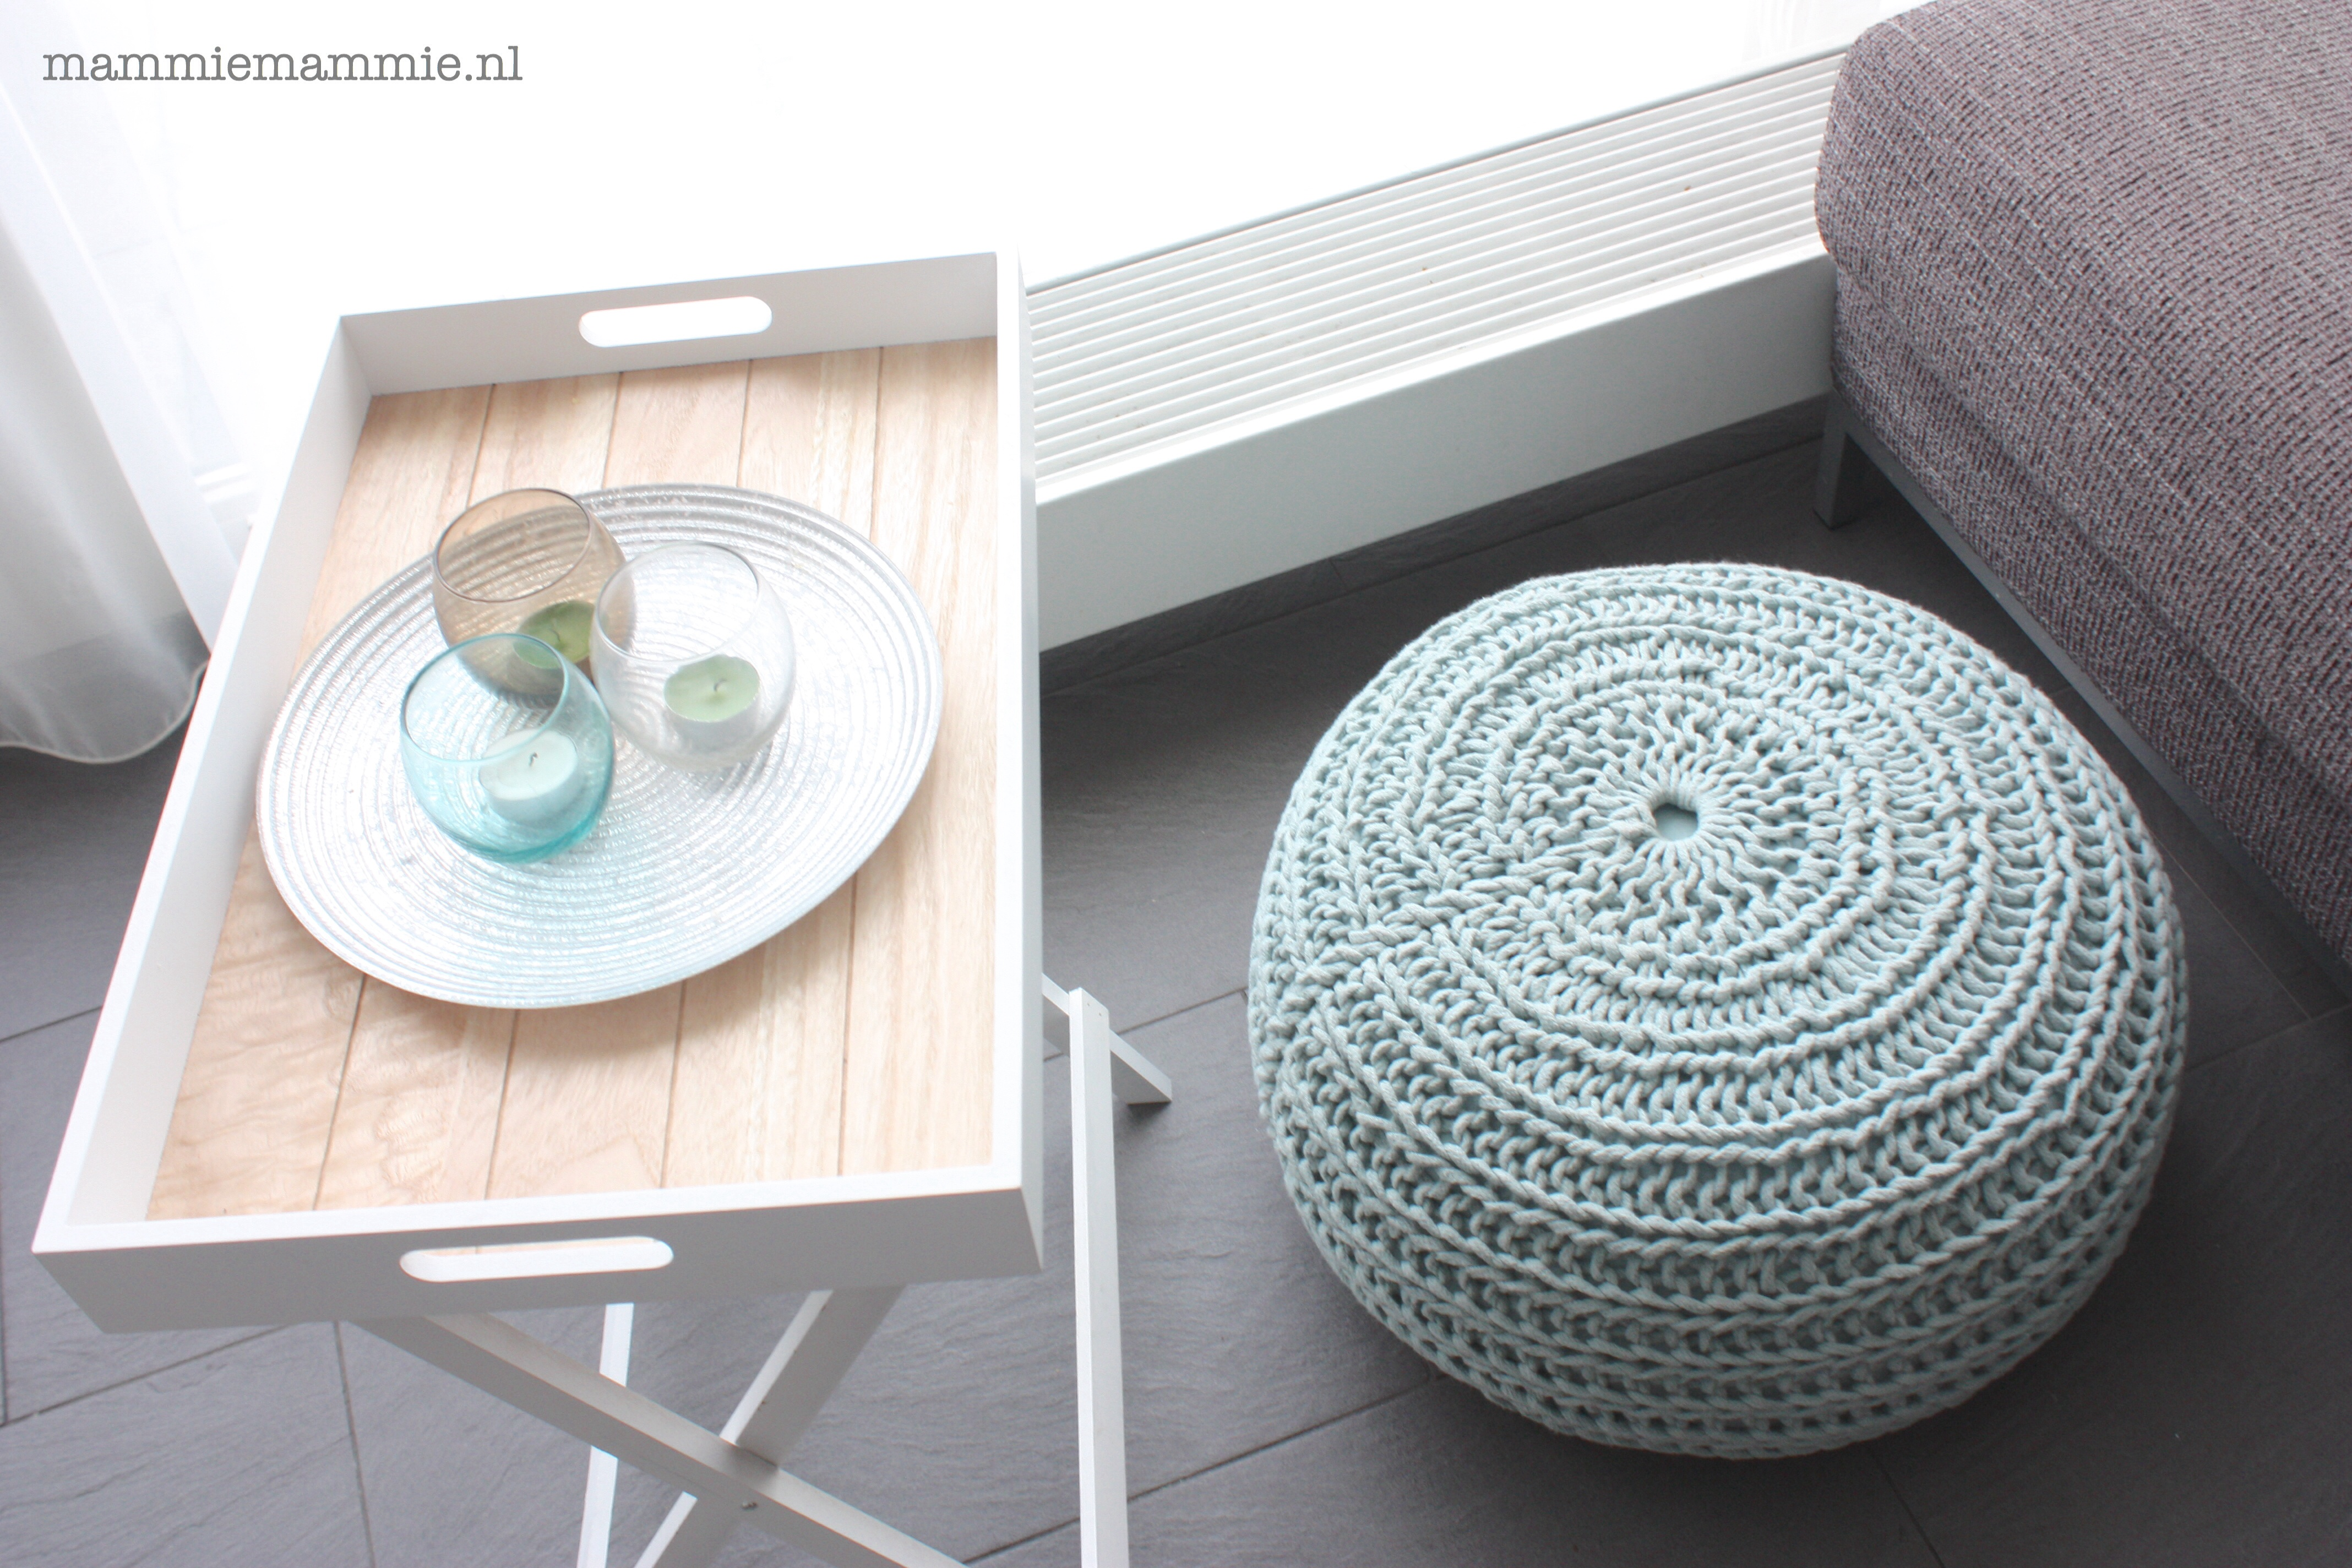 Home & living | mijn woonkamer favorites - Mammie Mammie ○ mama blog